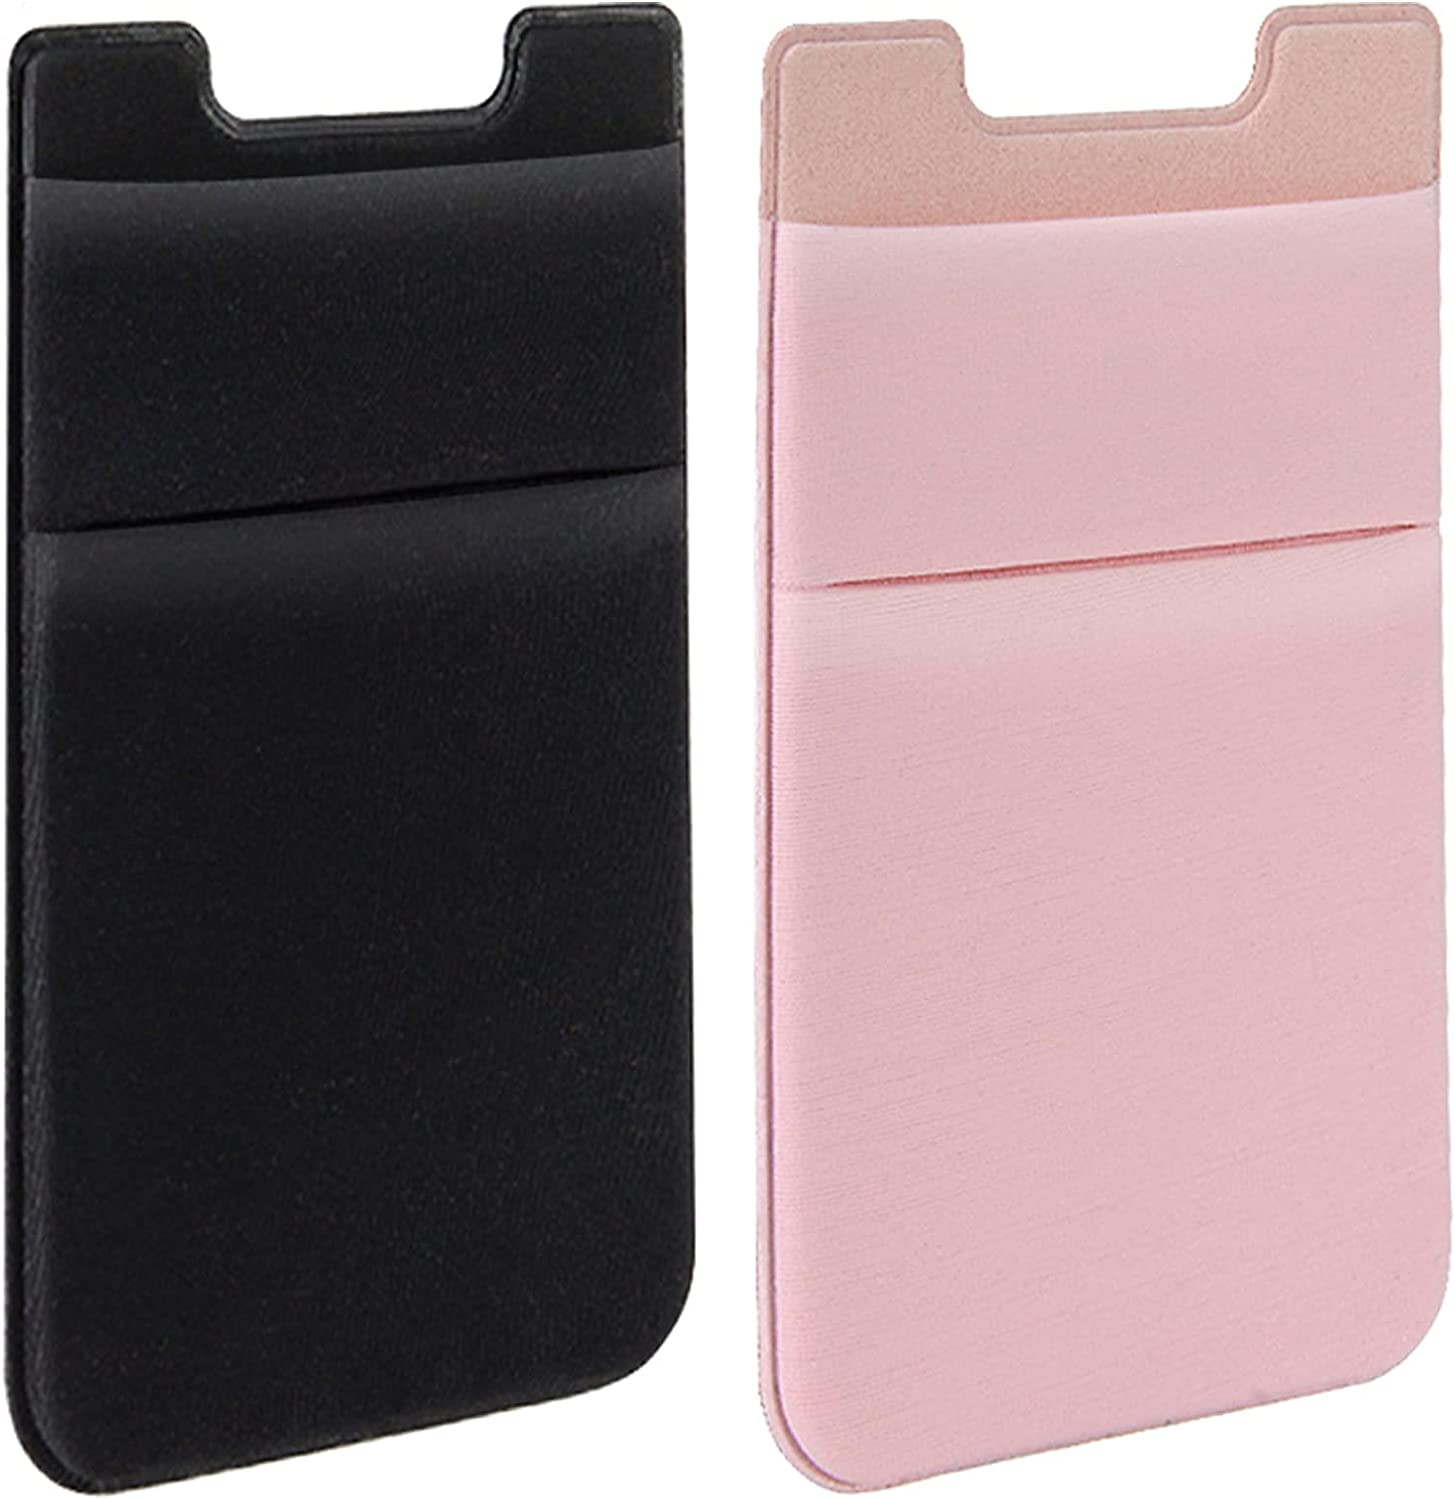 SHANSHUI Card Holder for Back of Phone, Adhesive Stretchy Fabric Lycra Double Slots Credit Card Sleeves Stick On Wallet Pocket Compatible with iPhone and Most Smartphones(Black&Pink)